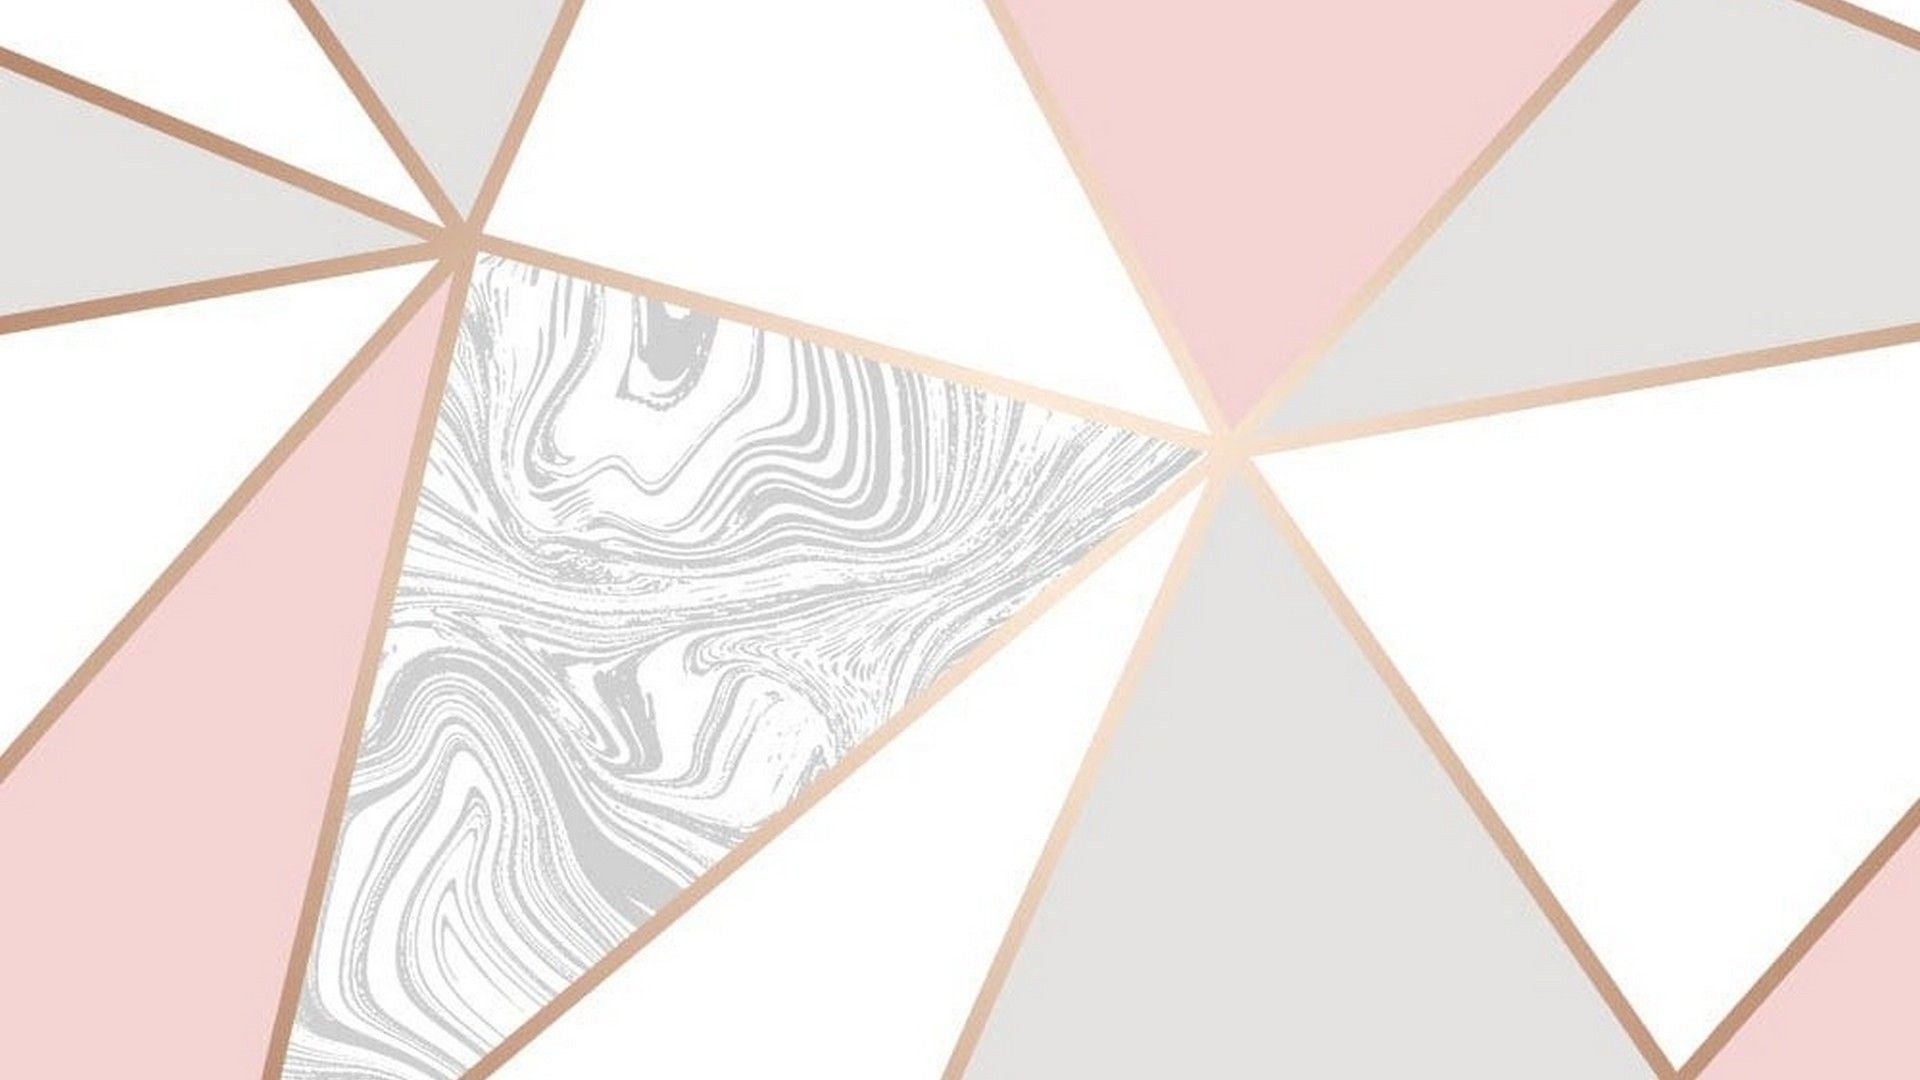 Pink Marble Desktop Wallpapers Top Free Pink Marble Desktop Backgrounds Wallpaperacces Rose Gold Marble Wallpaper Gold Marble Wallpaper Rose Gold Wallpaper